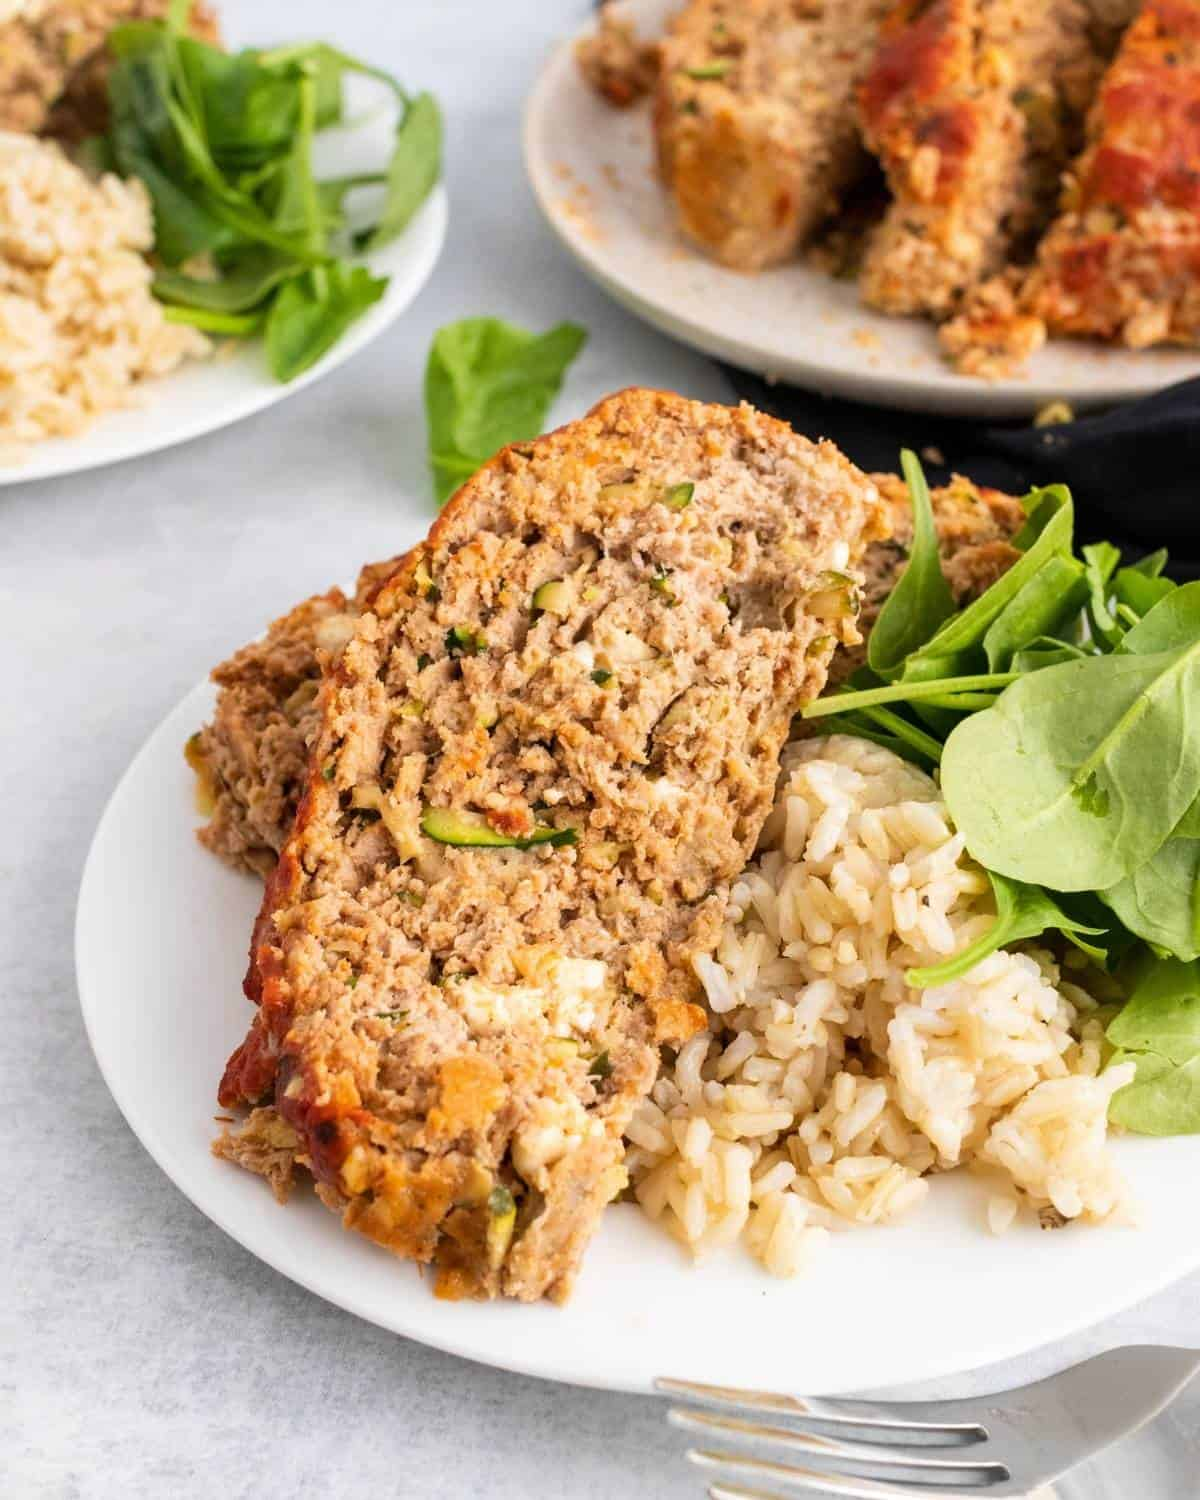 slices of turkey meatloaf with shredded zucchini and feta cheese